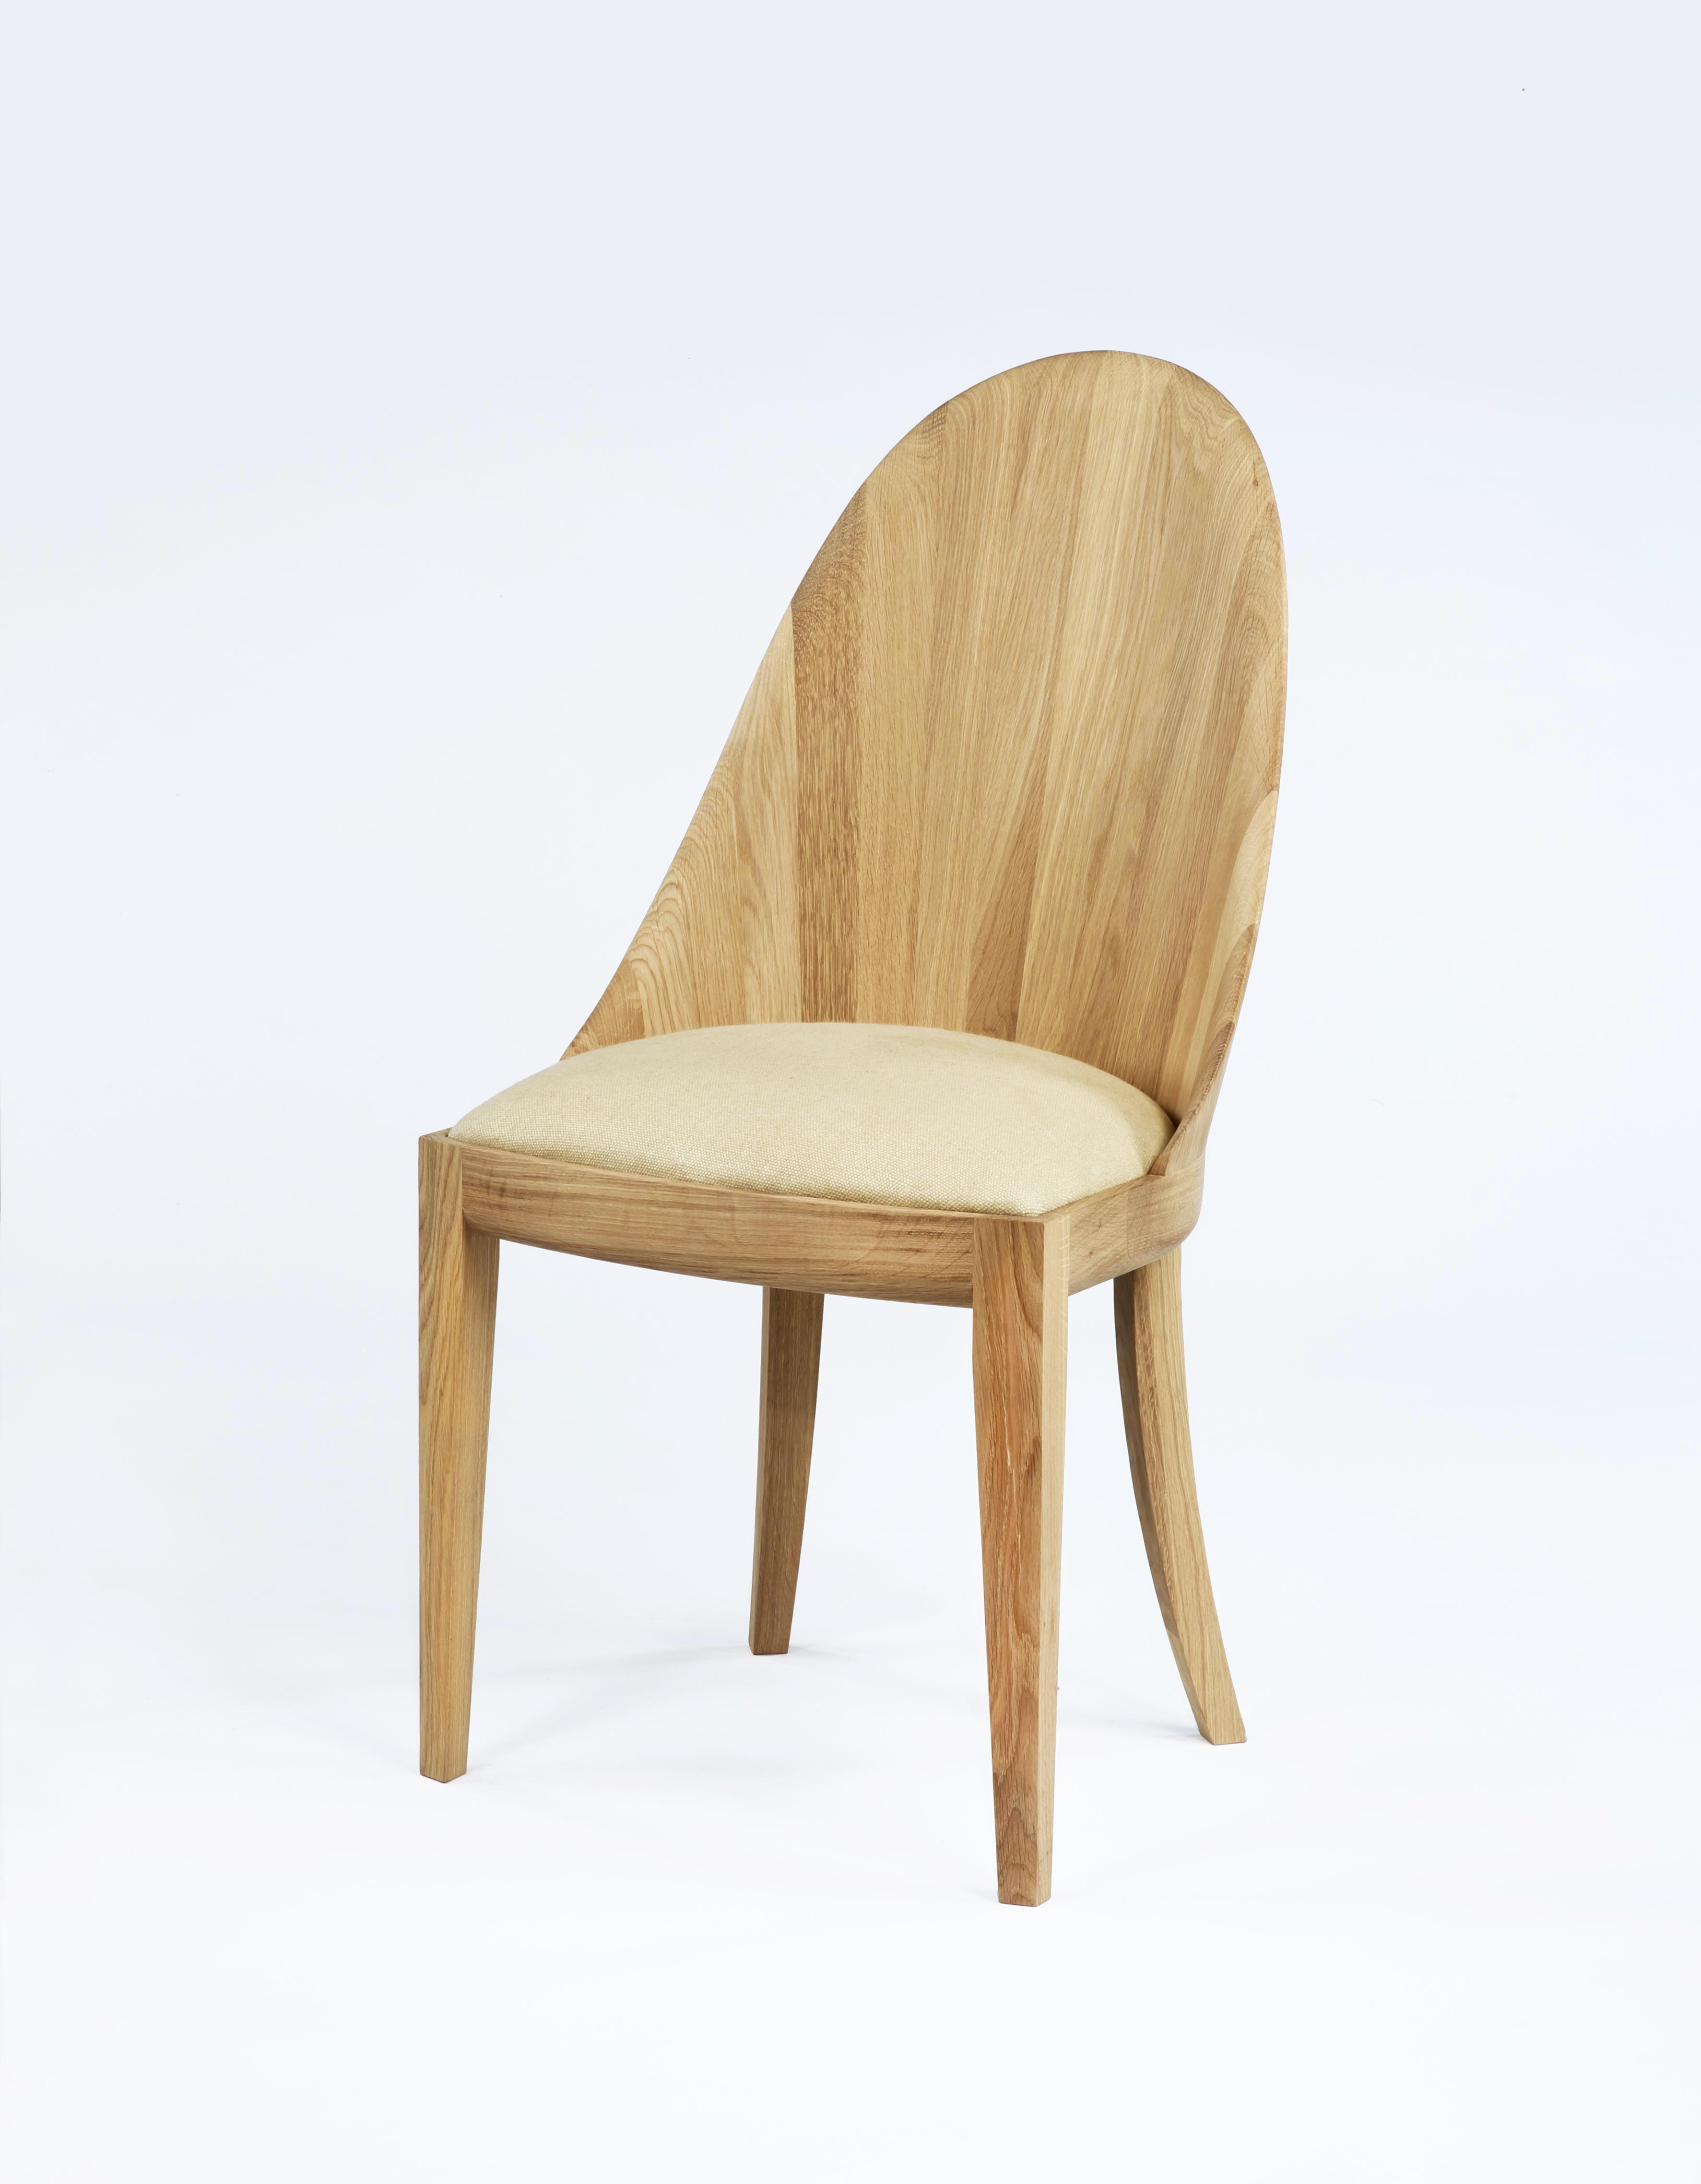 Oak Theatre Chairrose Uniacke In Dining Chairs With Liverpool Classic Style Rocking Chairs In Antique Oak Finish (#18 of 20)